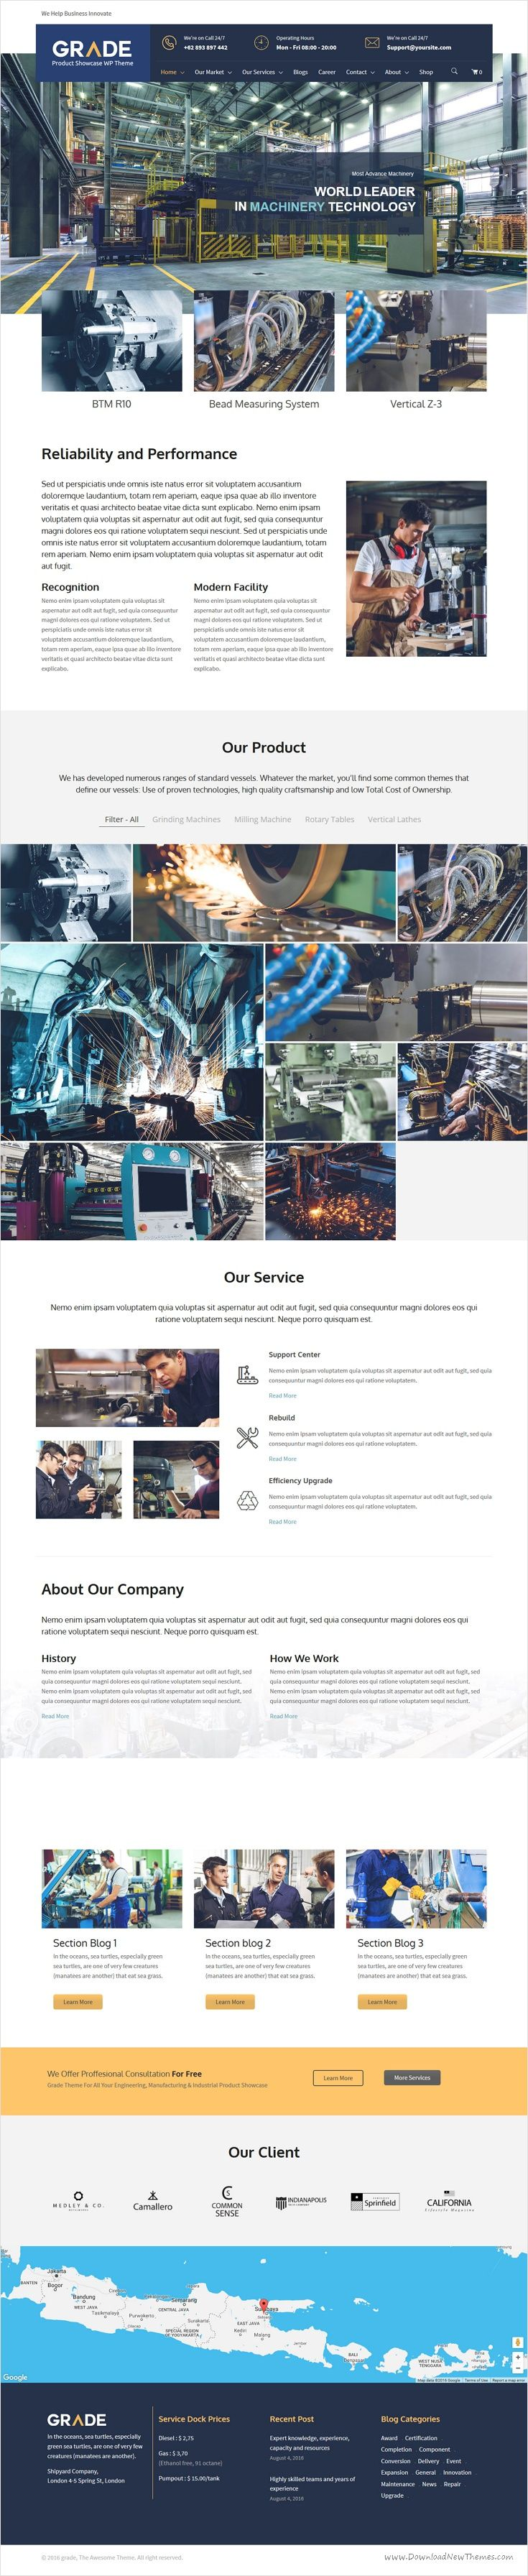 Grade is a perfect responsive 3 in 1 #WordPress Theme for  #Manufacturing & #Industrial Product Showcase or Engineering website download now➩ https://themeforest.net/item/grade-engineering-manufacturing-industrial-product-showcase-wp-theme/17334925?ref=Datasata